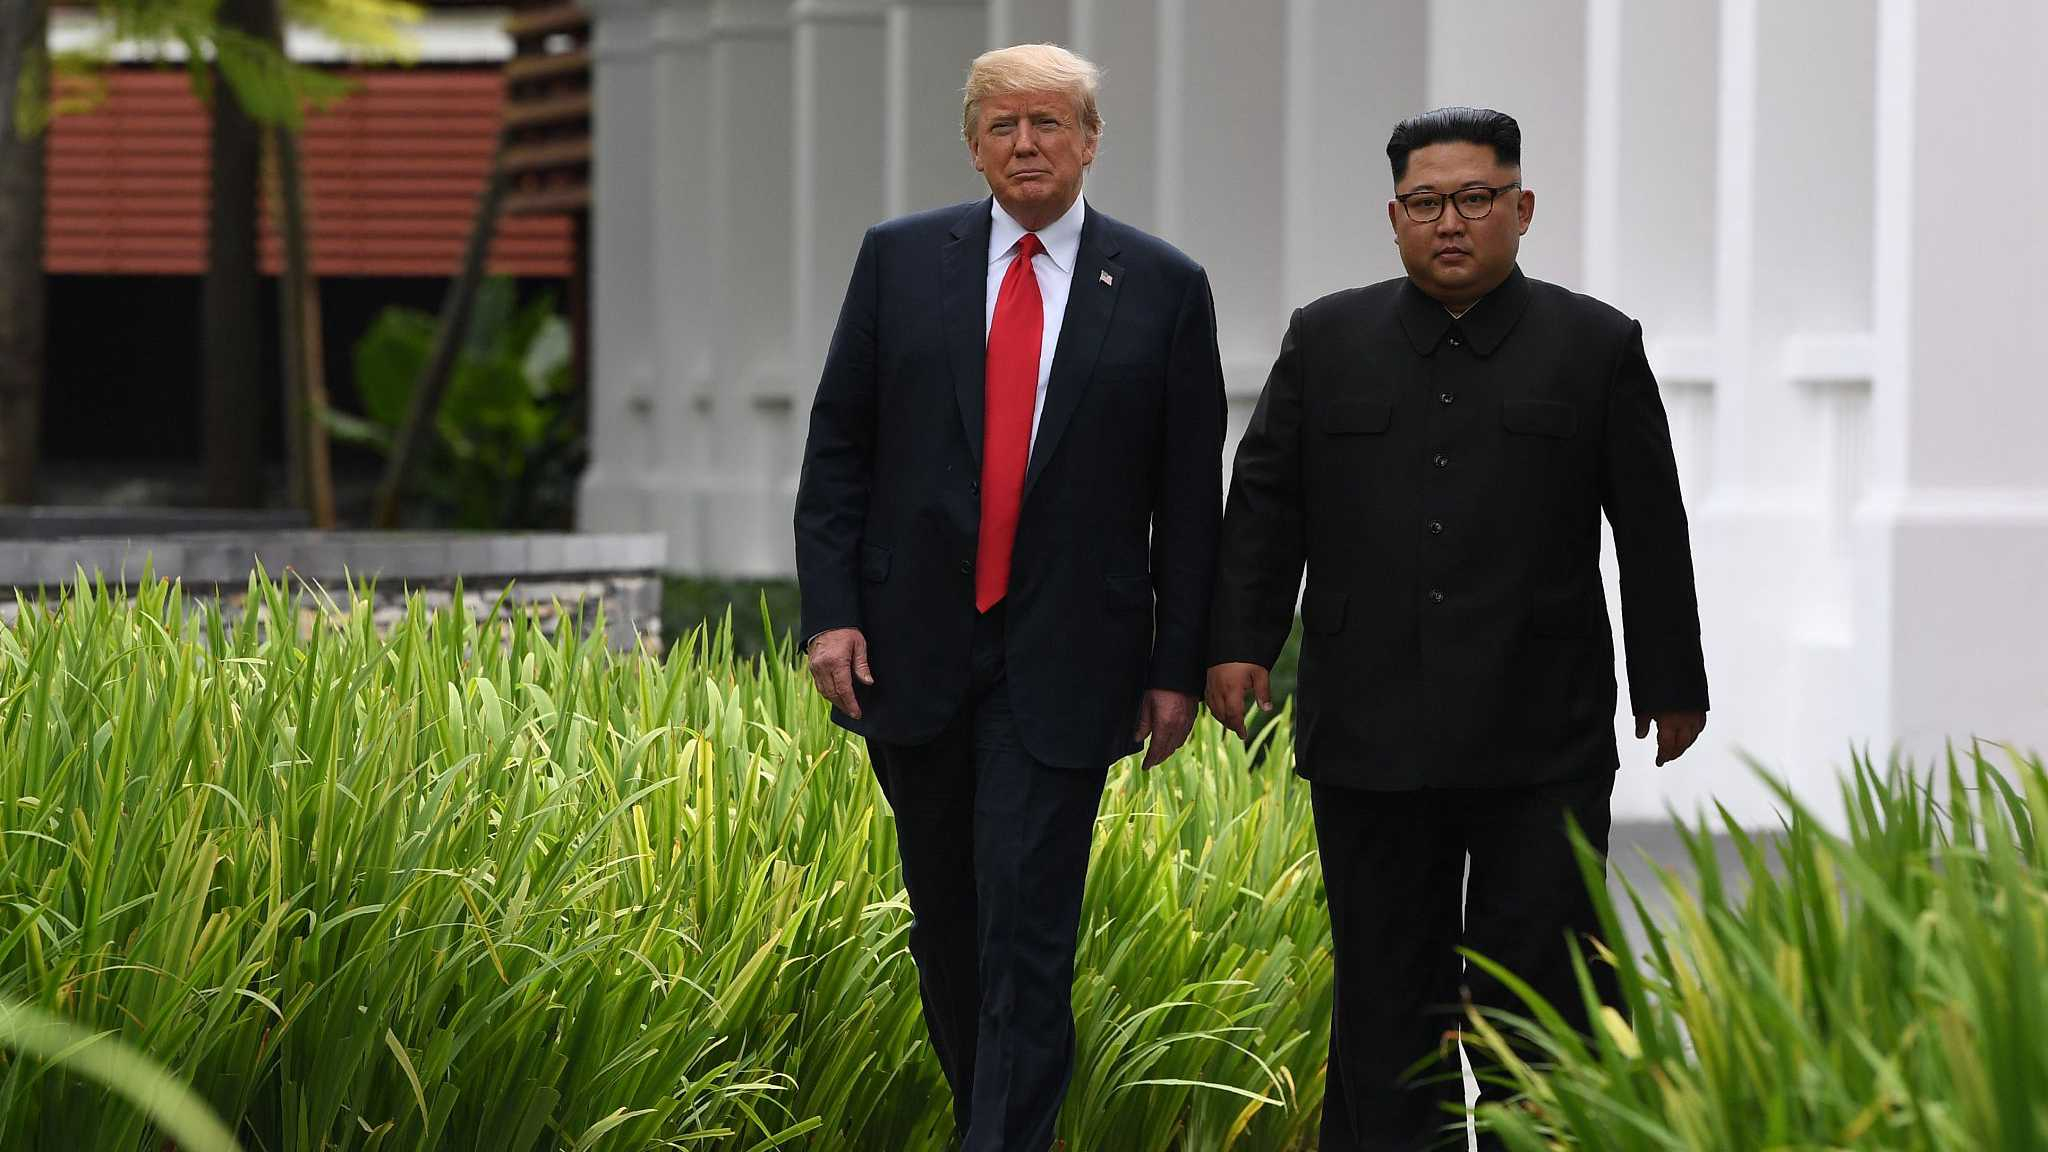 S Korean president receives Trump's message to DPRK leader: source